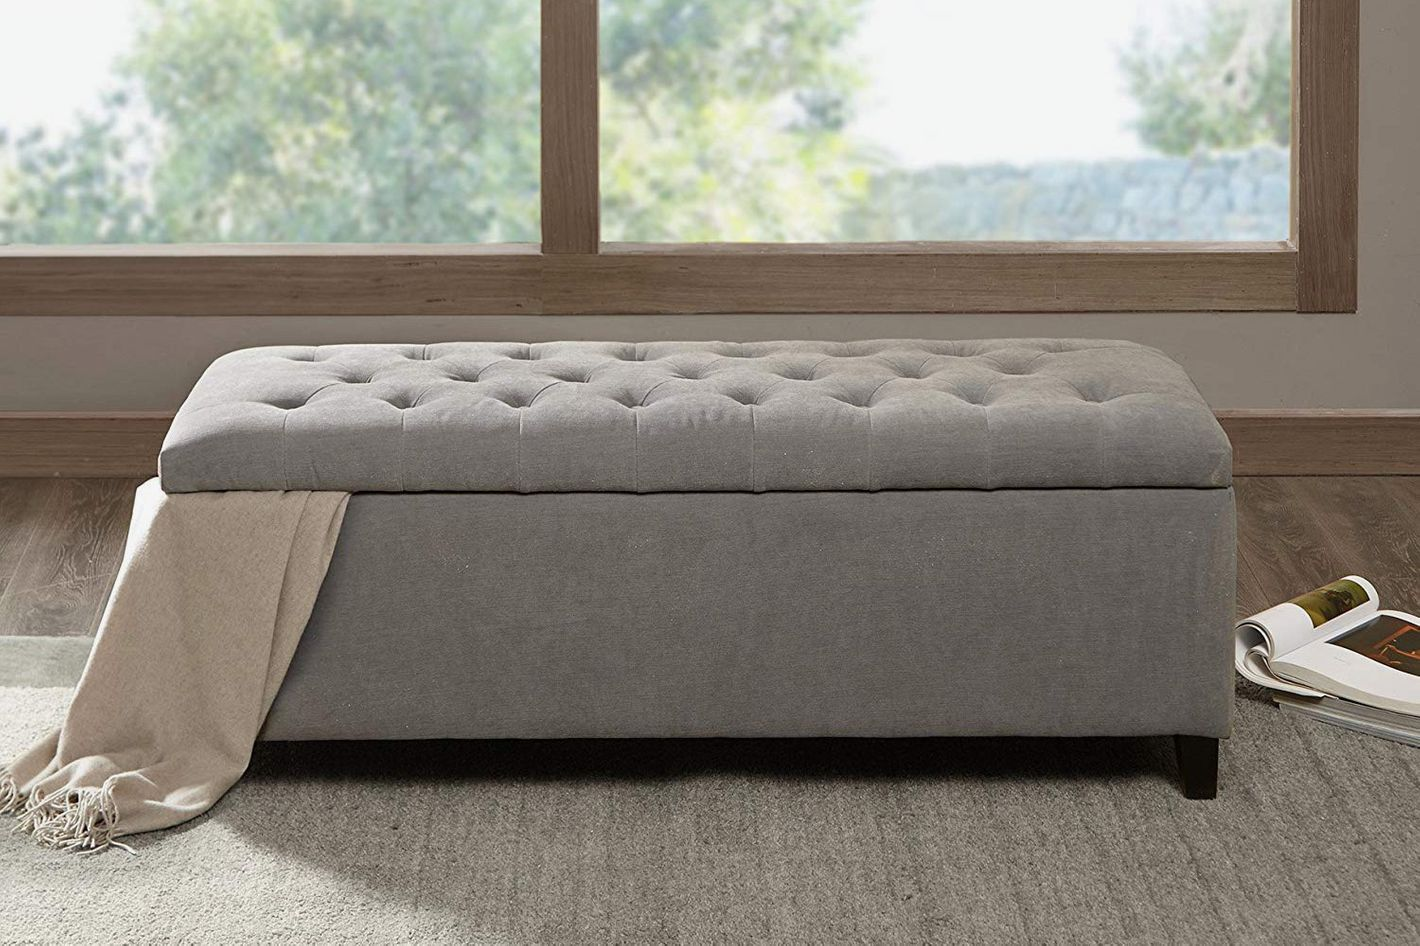 Madison Park Shandra Tufted Top Storage Bench Grey